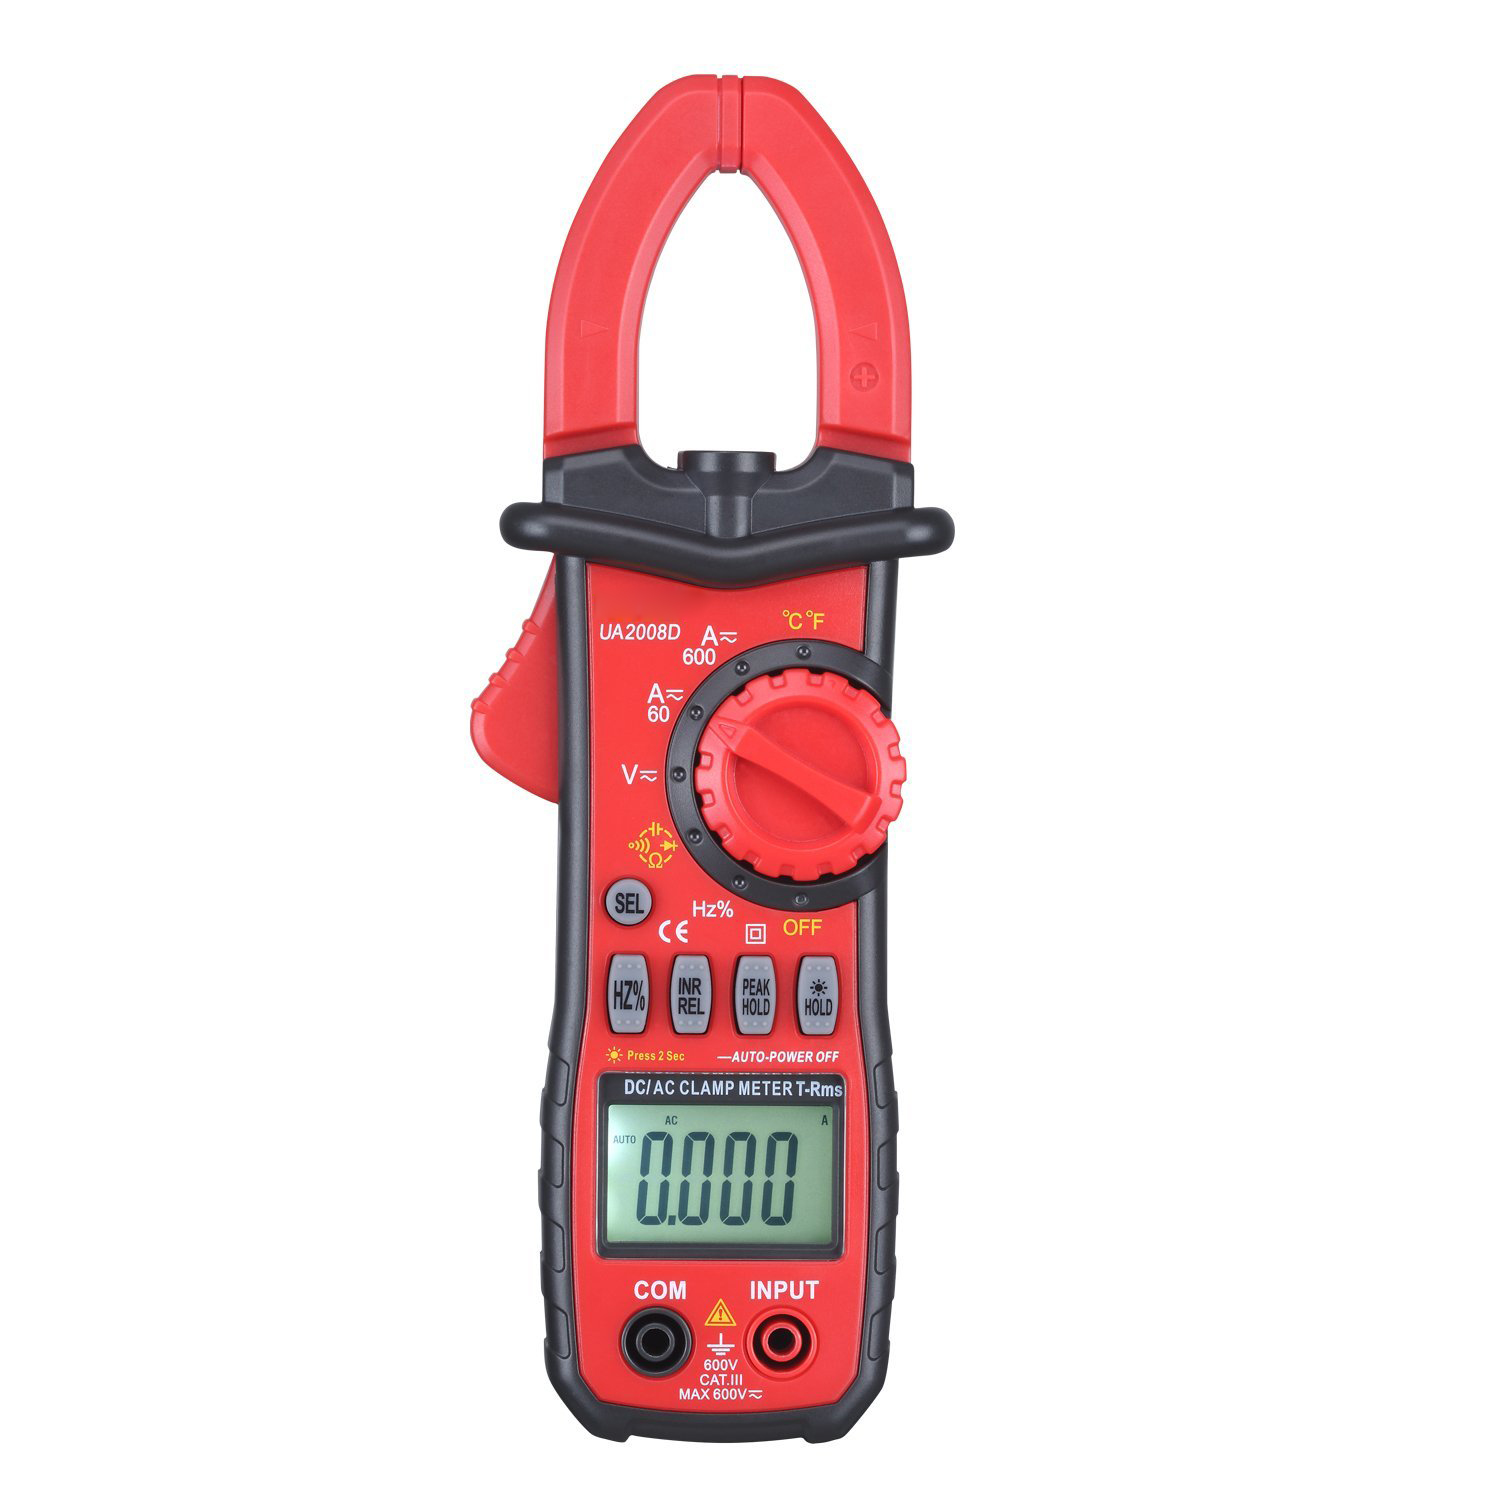 CSS UYIGAO 600A AC Clamp Meter Digital Multimeter with Resistance, Capacitance Voltage, Current, Diode and Continuity Testing